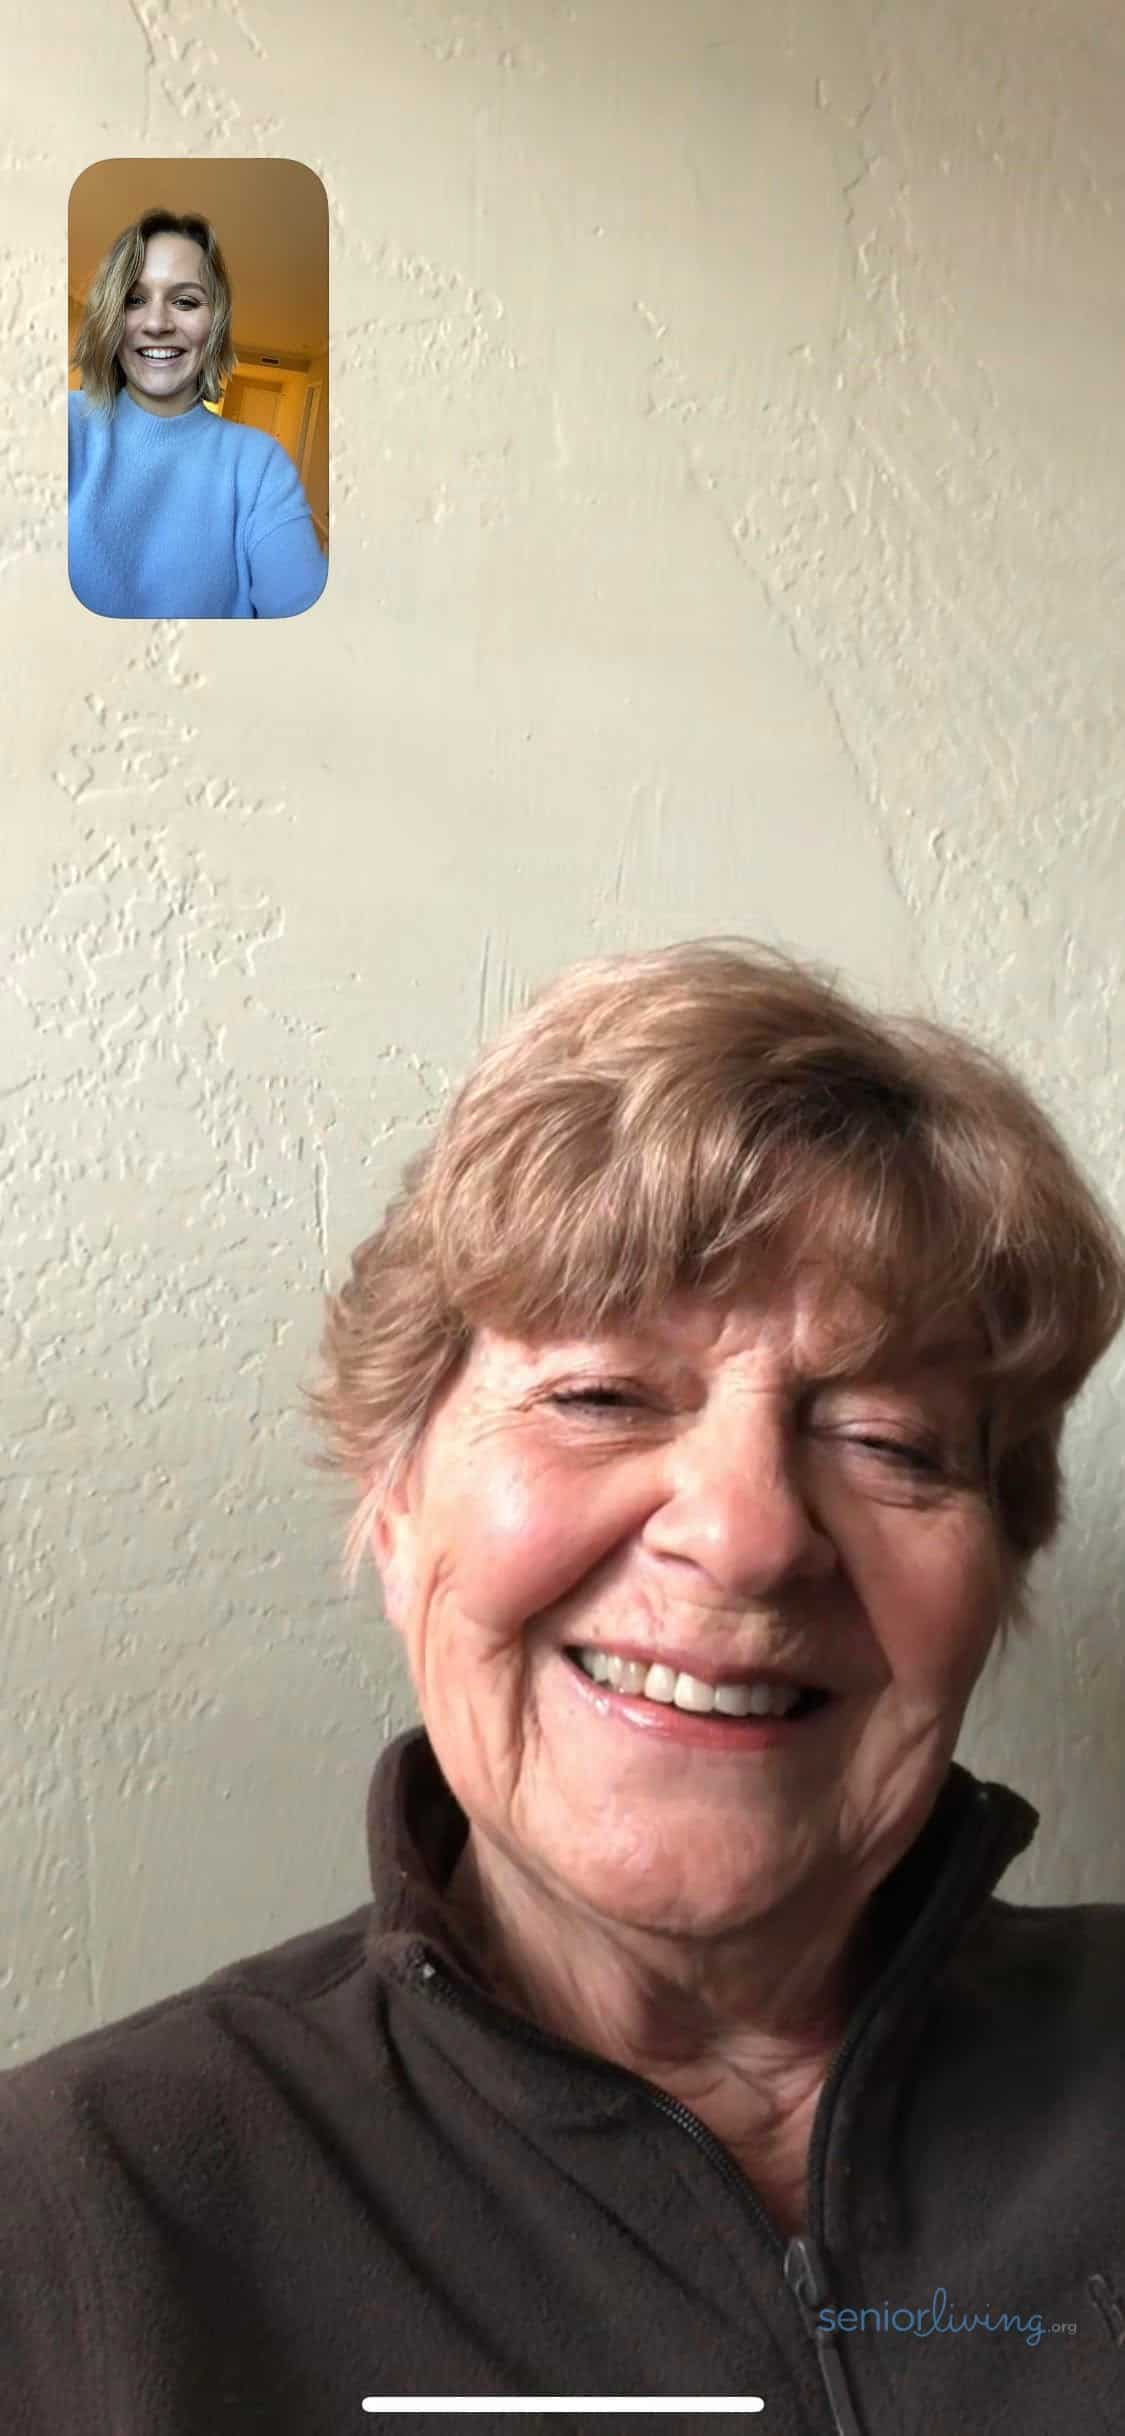 FaceTime - Our Editor FaceTiming with her grandma